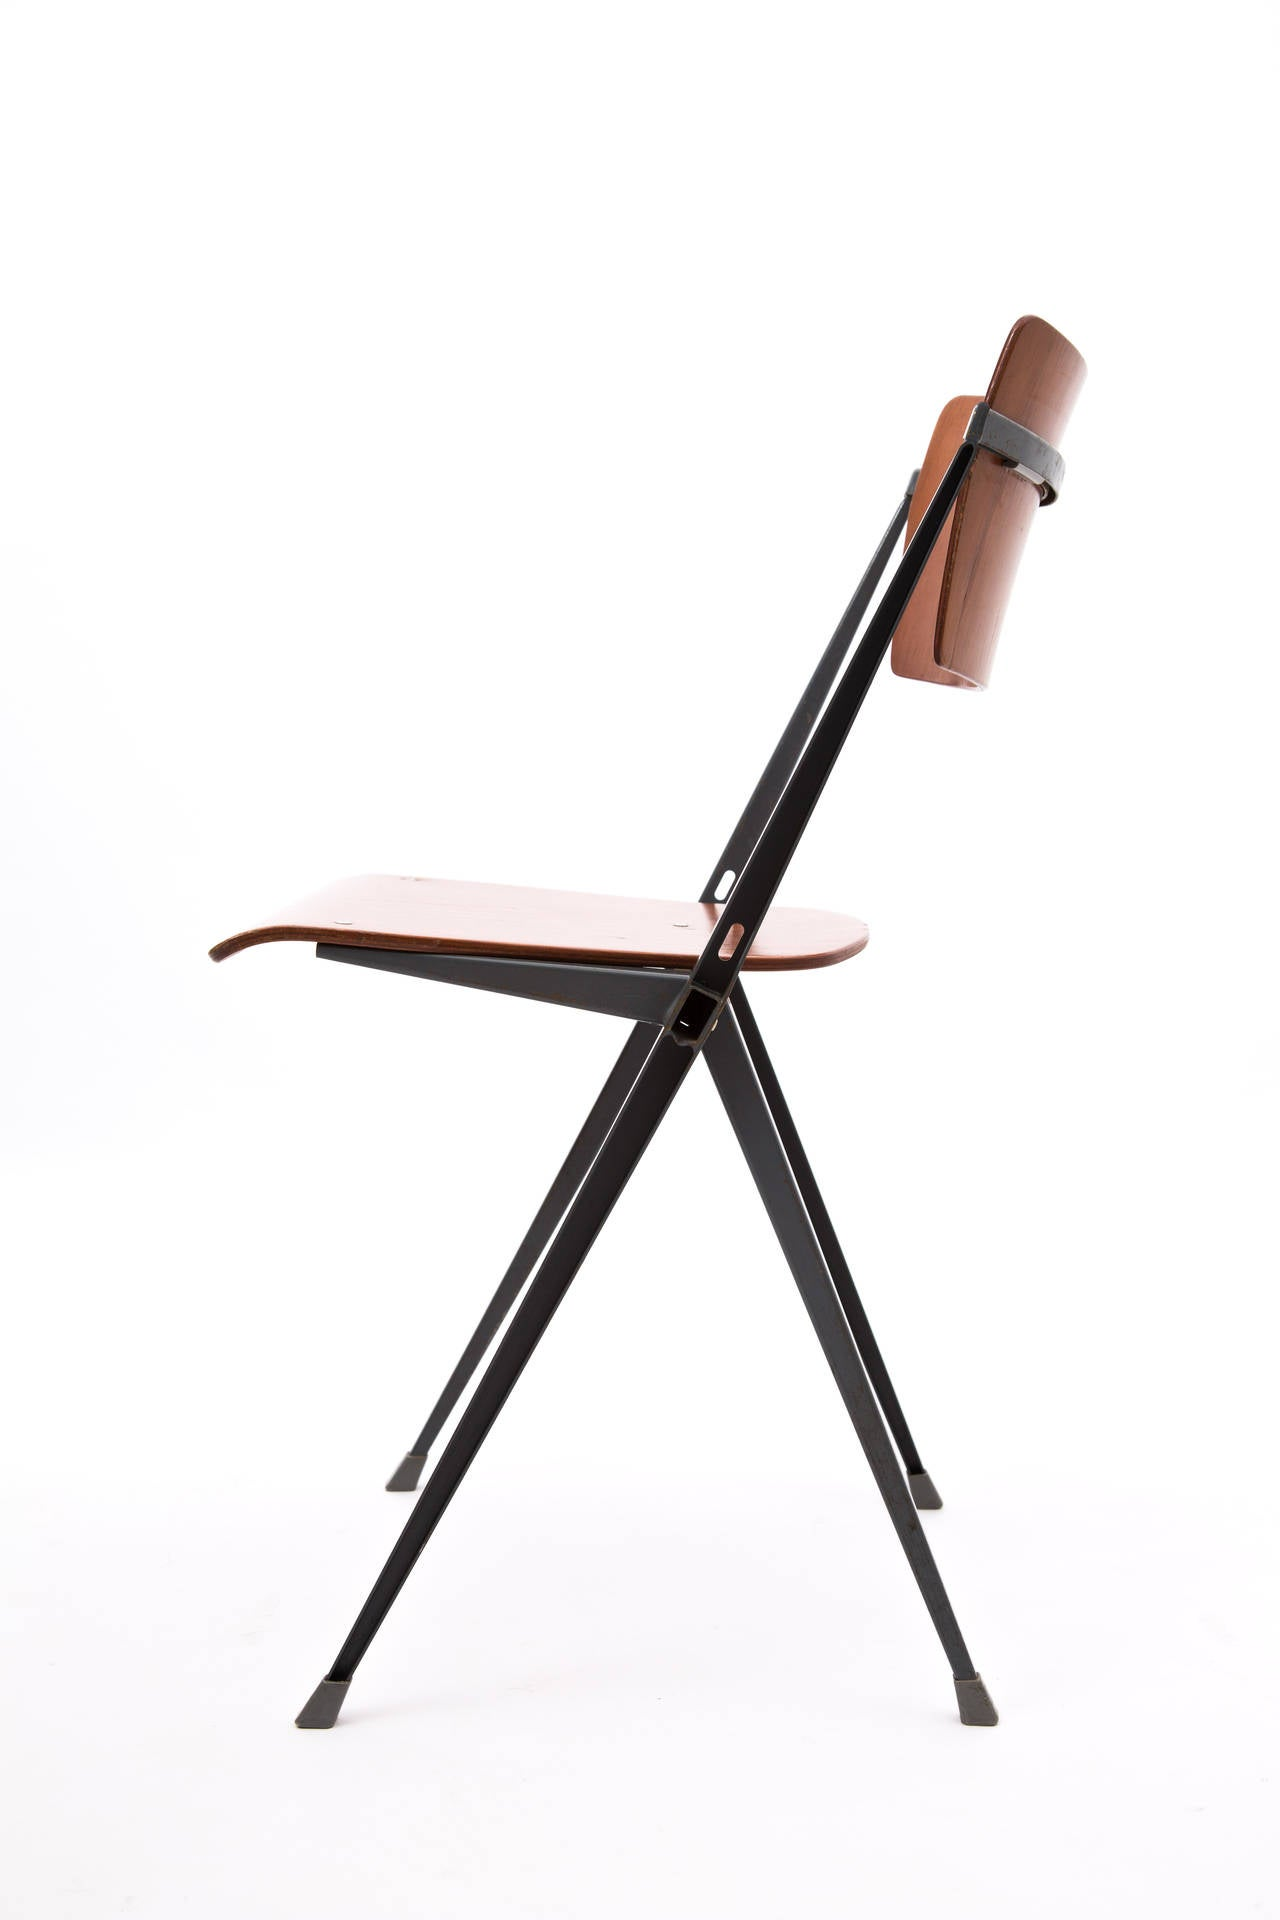 Wim Rietveld Pyramide Ahrend De Cirkel Chairs For Sale At